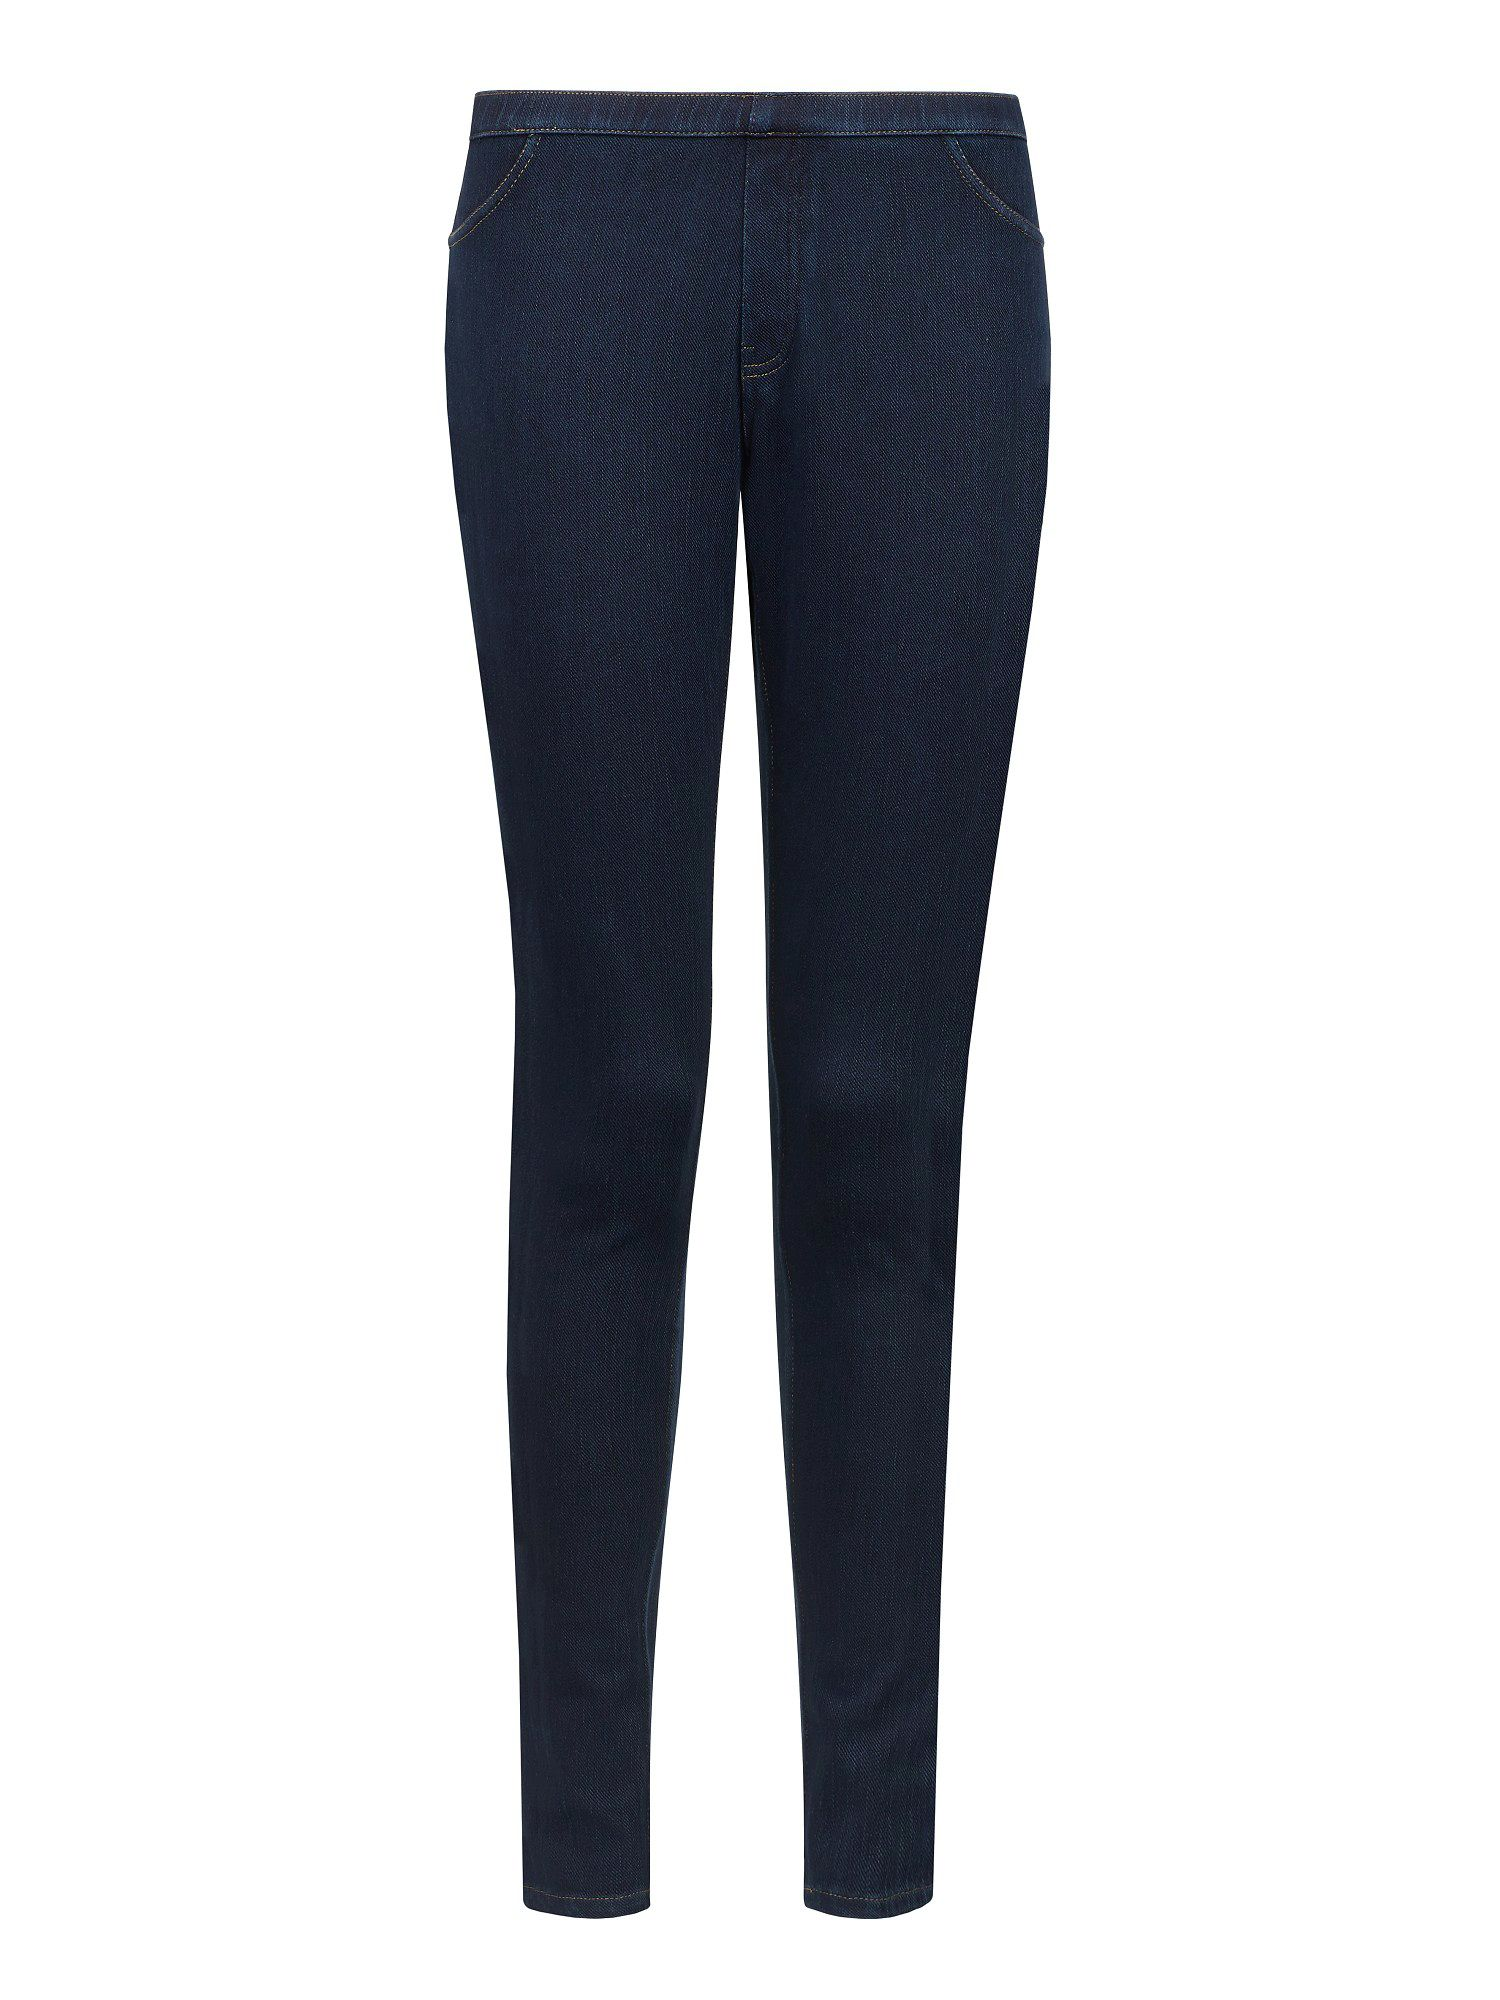 Indigo Stretch Textured Jeggings